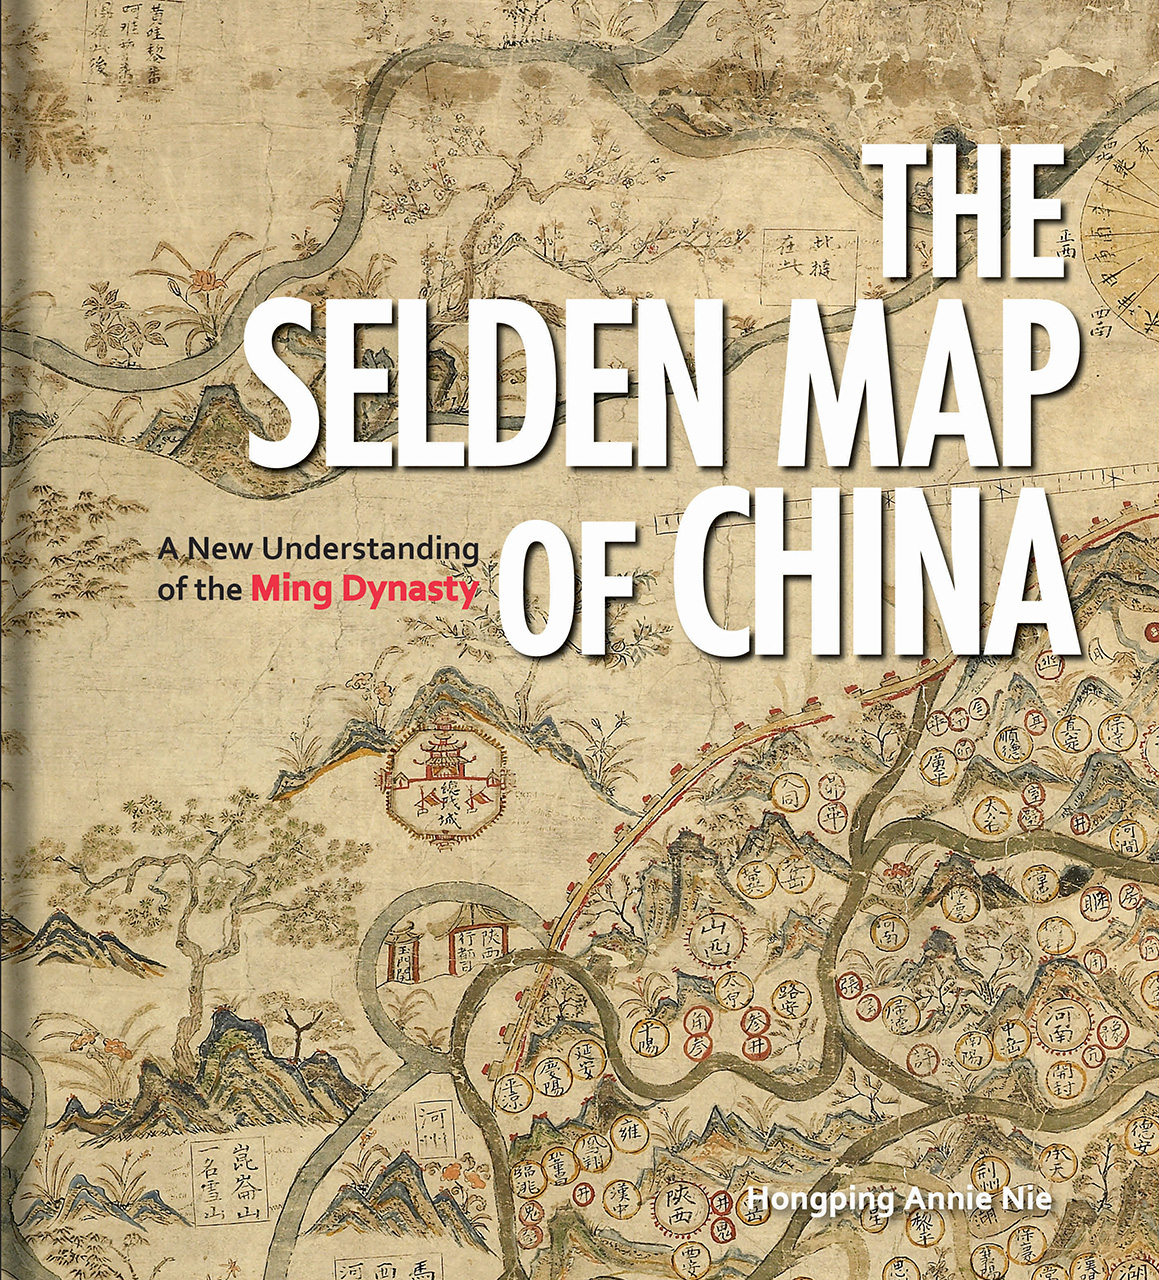 The Selden Map of China